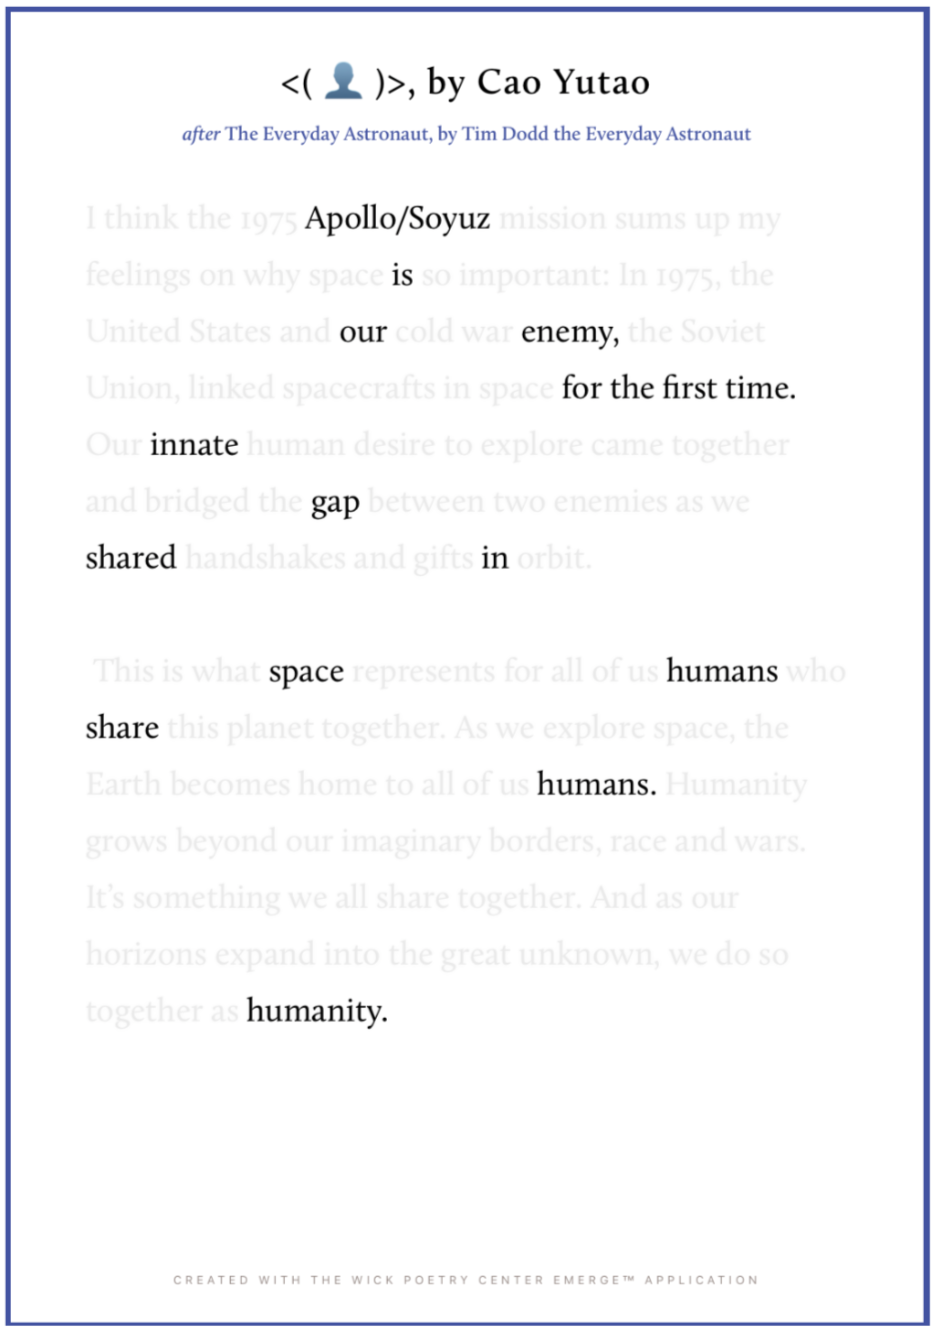 "Cao Yutao was inspired by Tim Dodd's ""The Everyday Astronaut."" Yutao's poem speaks to the shared humanity overcoming the disharmony of the Cold War's Space Race."